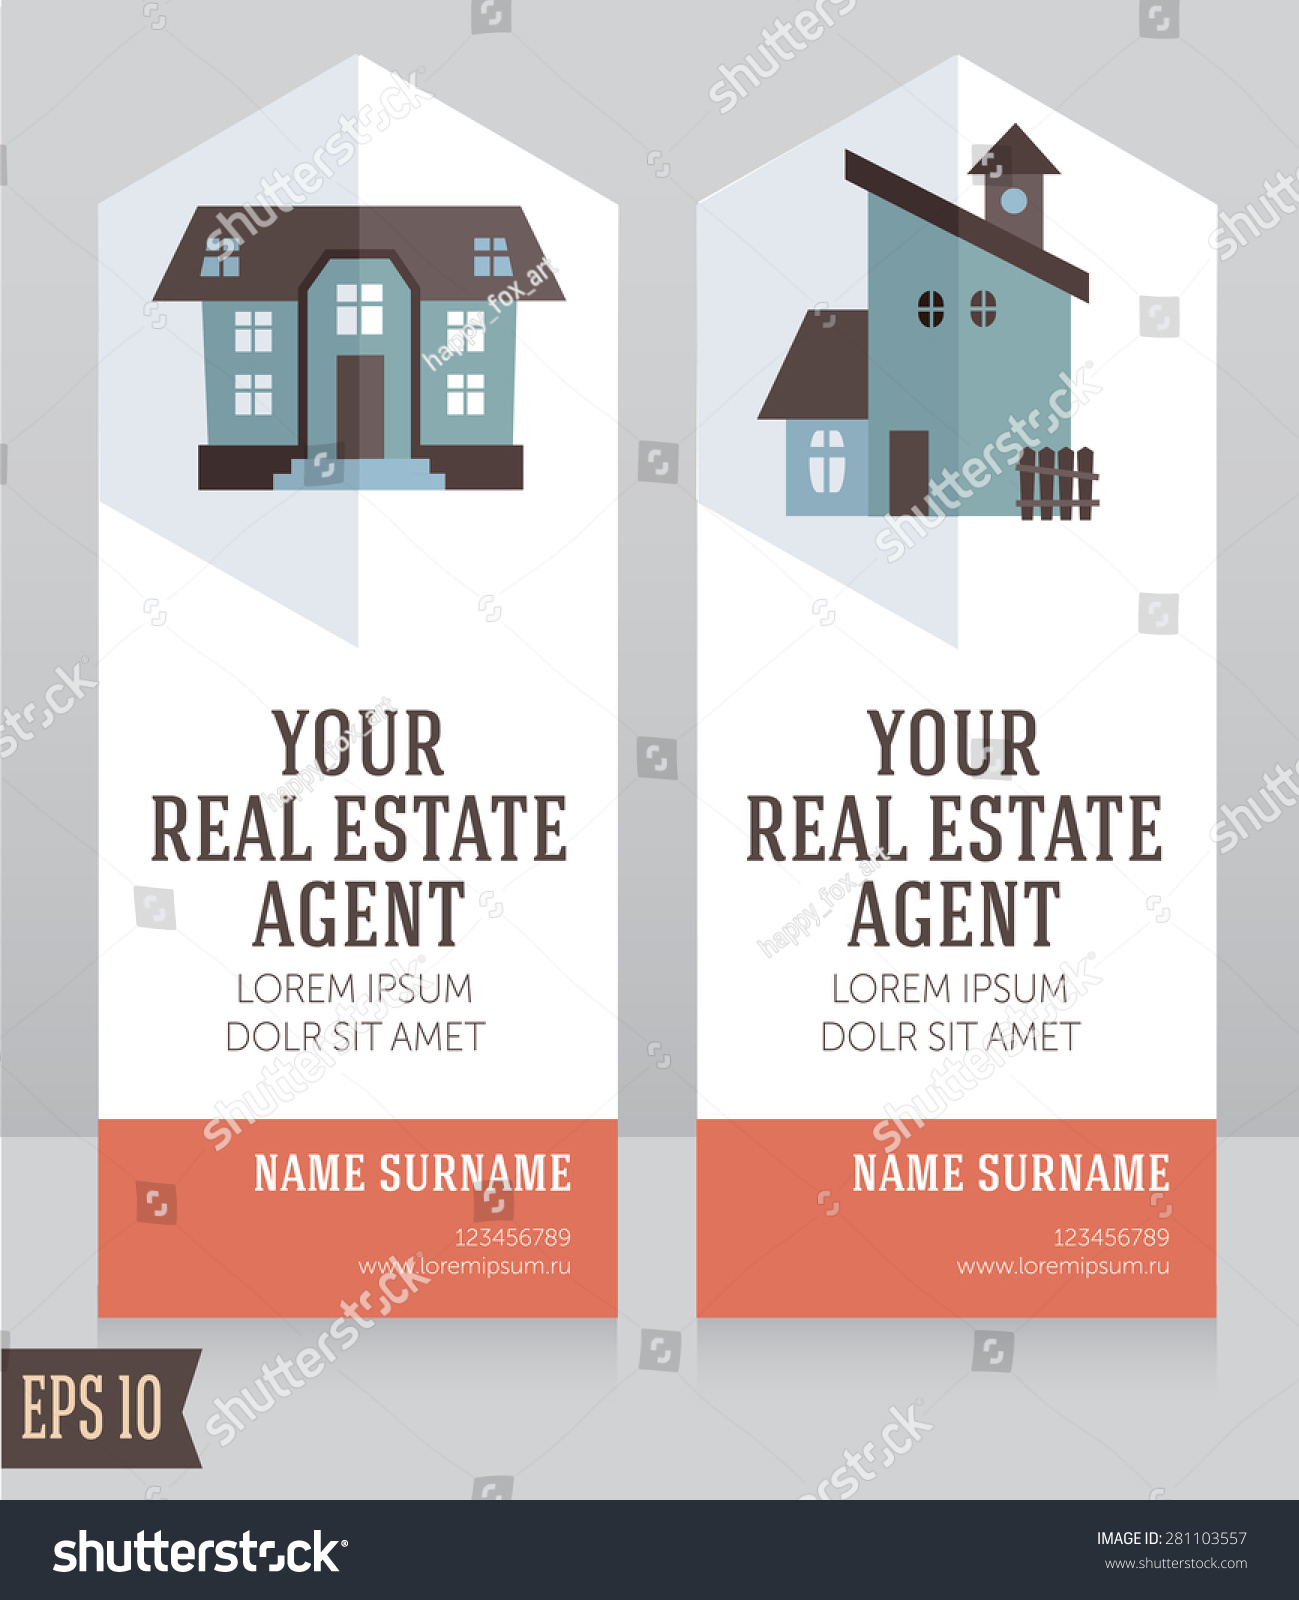 Real estate agent business card choice image free business cards design template real estate agent business stock vector 281103557 design template for real estate agent business magicingreecefo Gallery